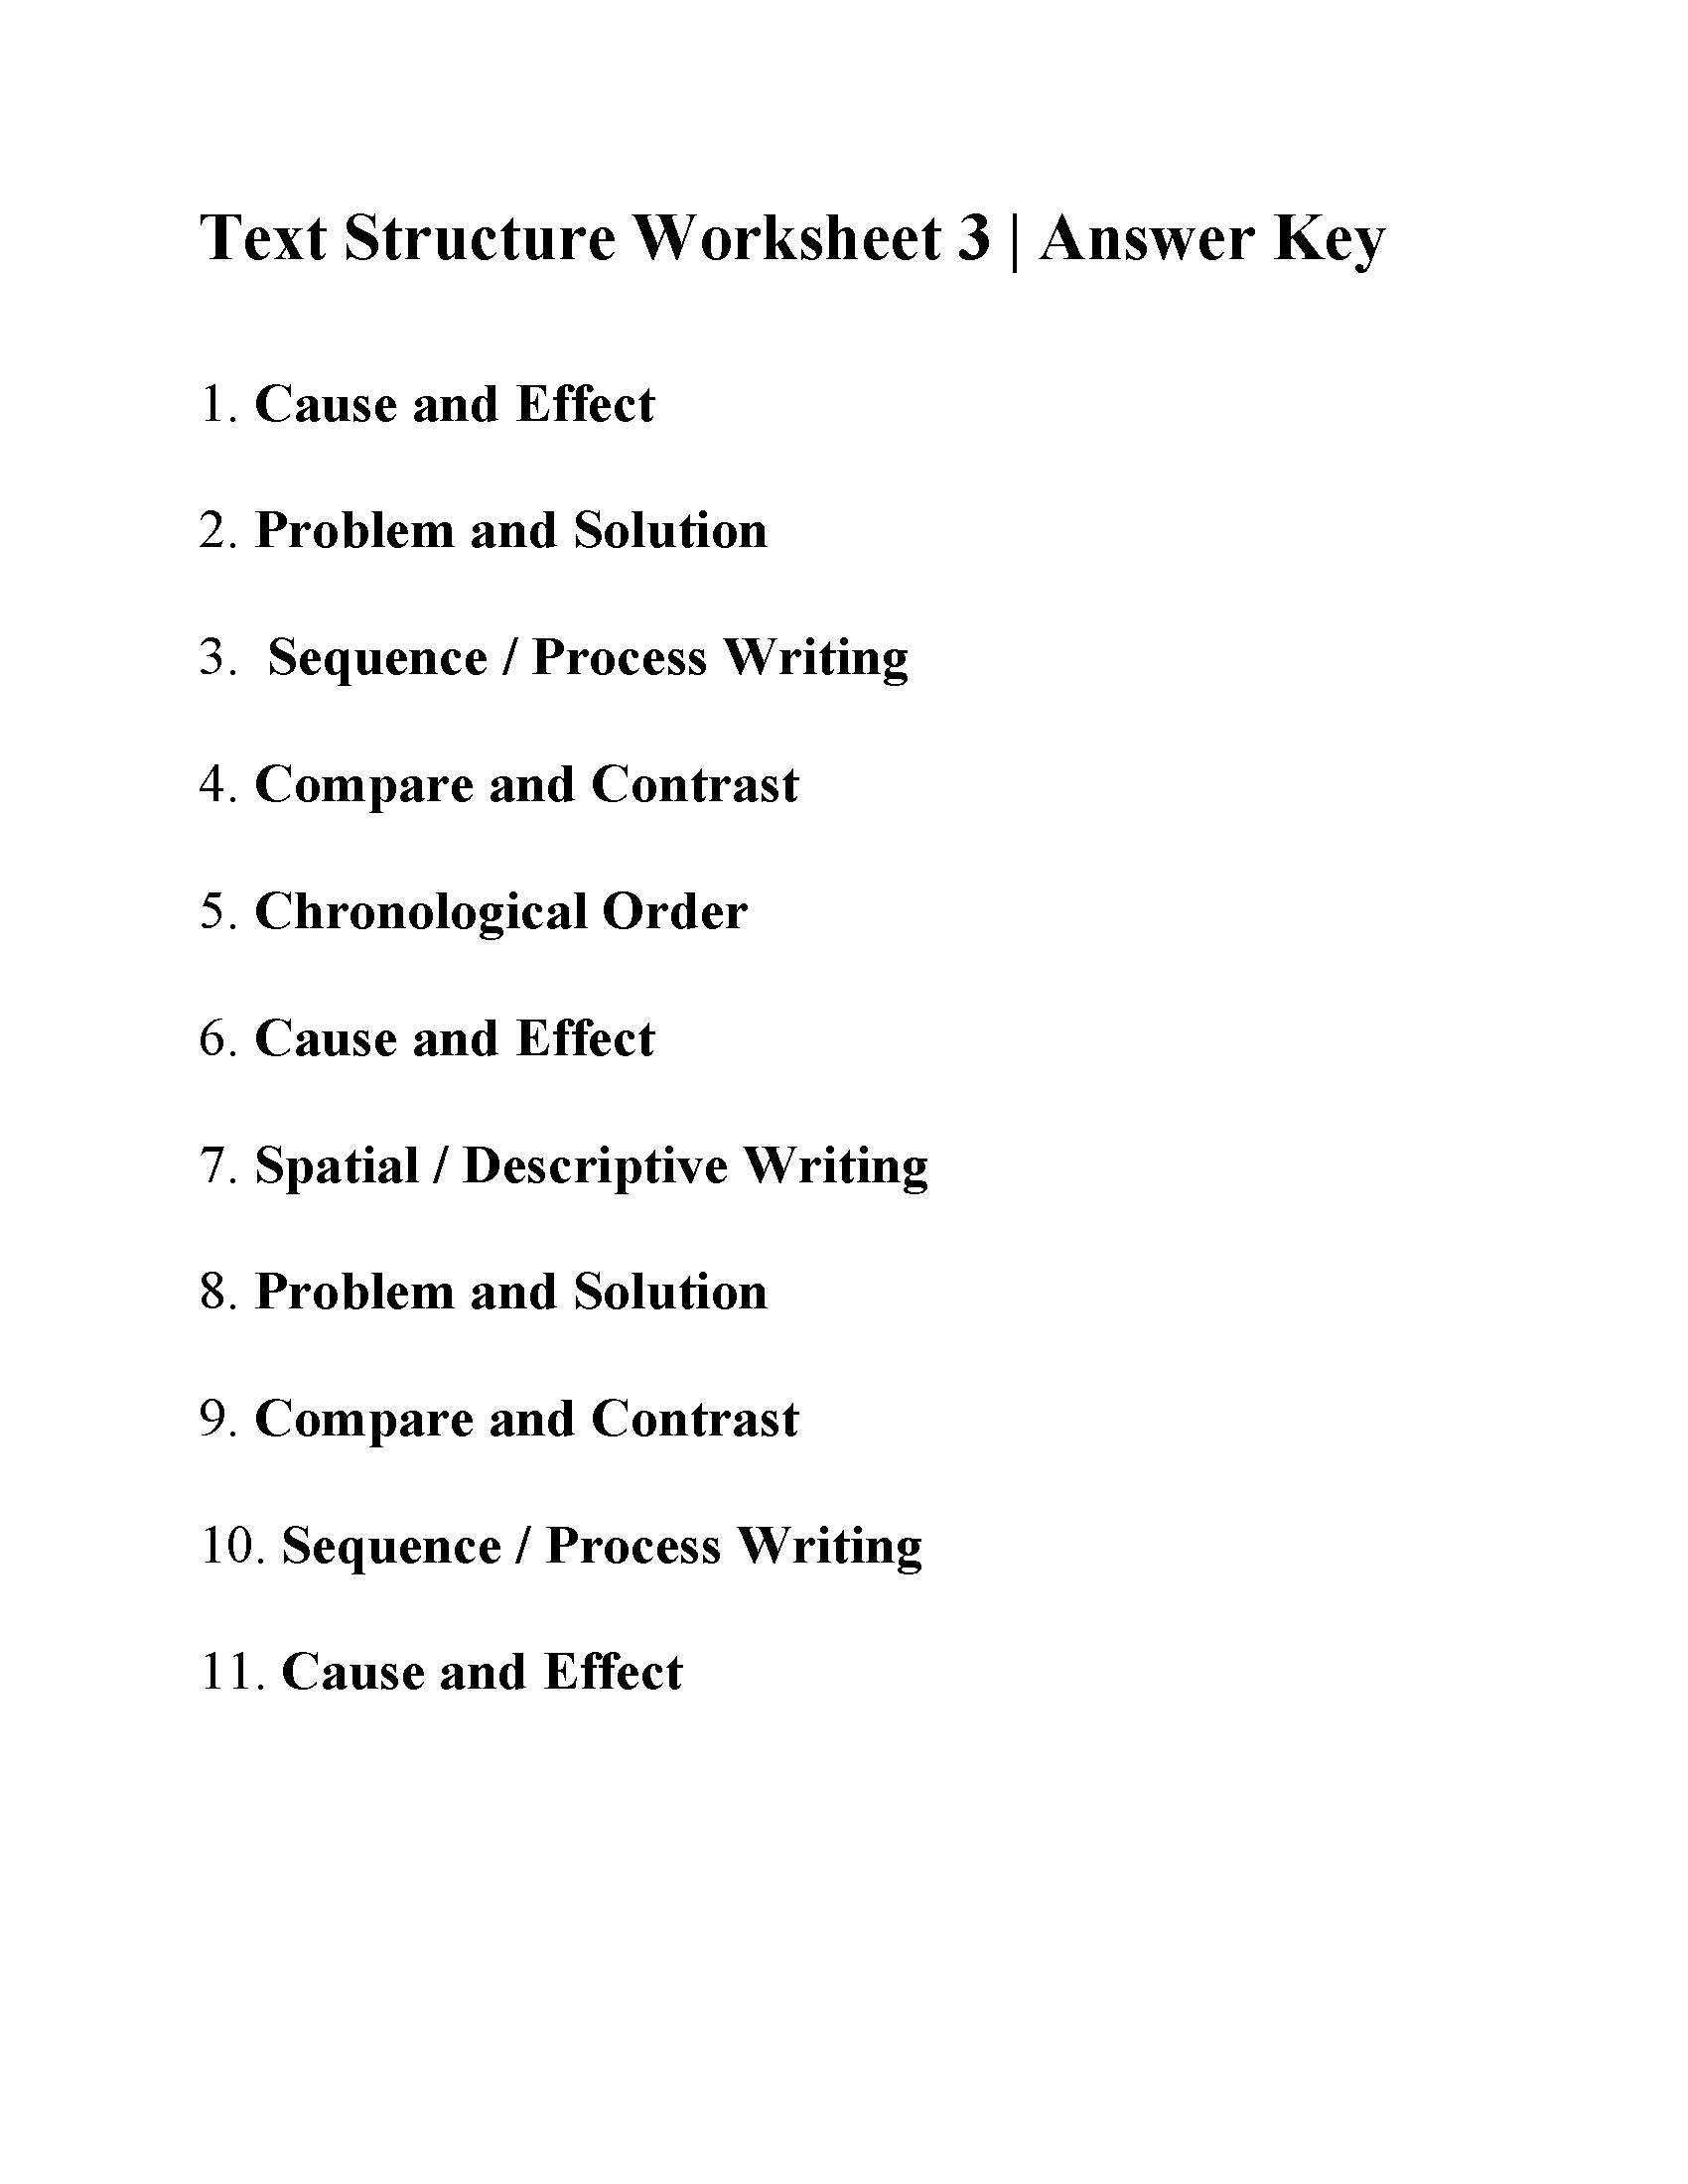 This Is The Answer Key For The Text Structure Worksheet 3